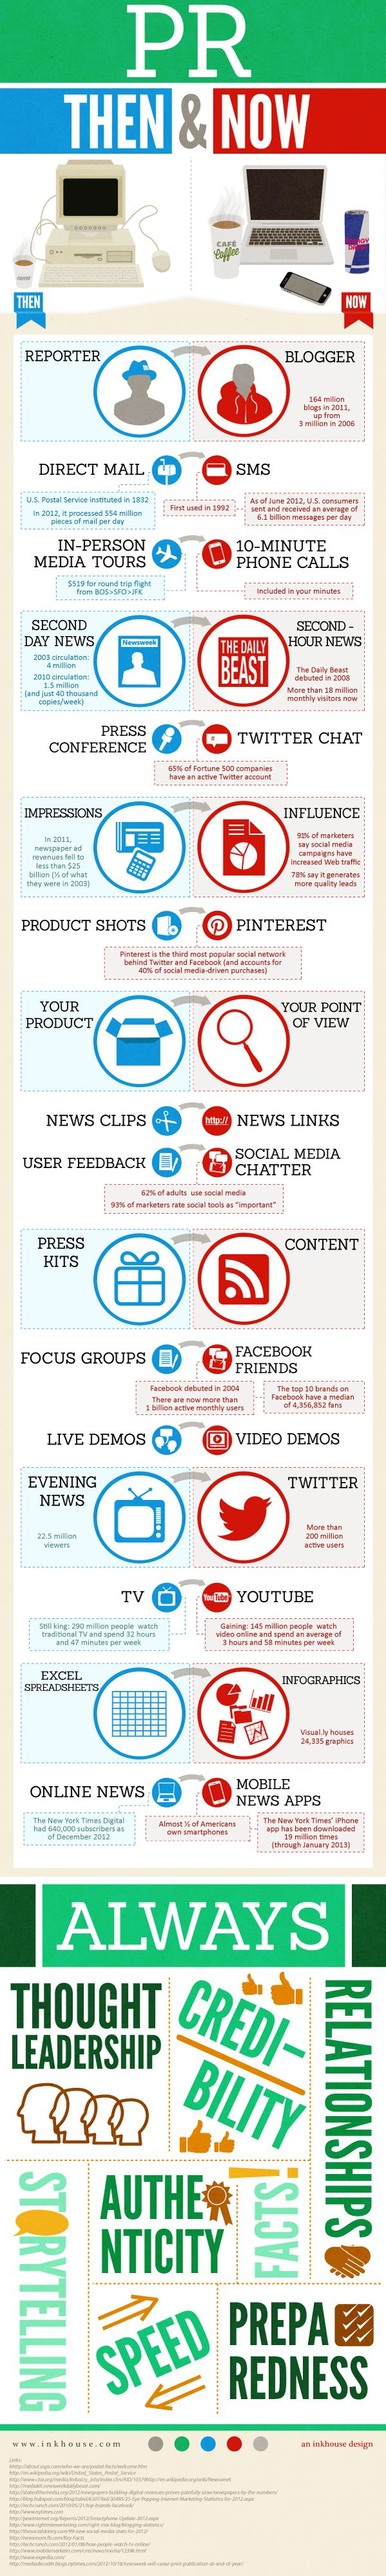 pr_thenandnow_useuseSocial Media Marketing, Public Relatable, Digital Media, Public Relations, Blog, Infographic, Socialmedia, Medium, Business